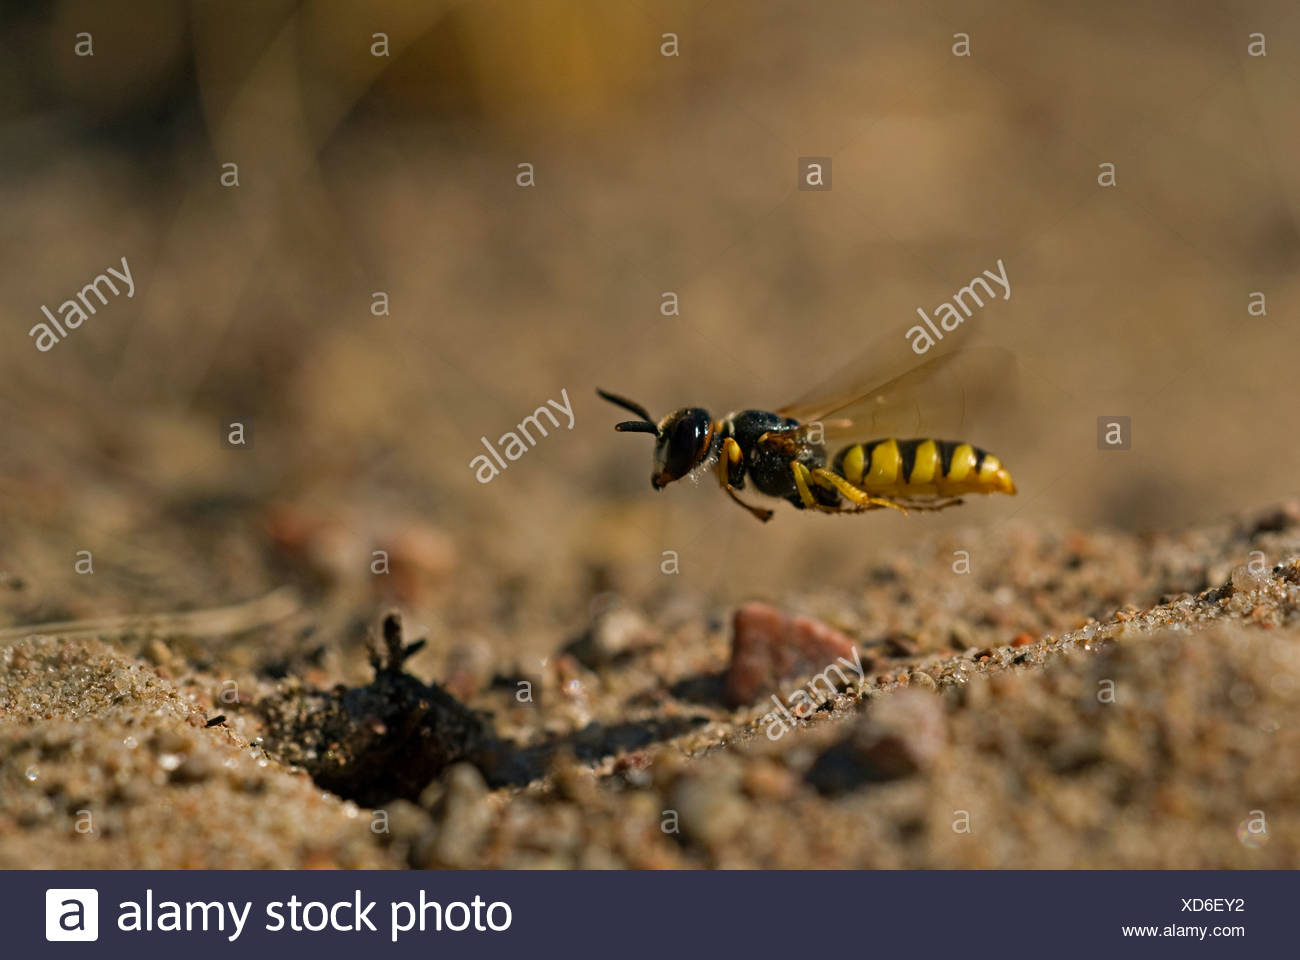 Scandinavia, Sweden, Oland, View of bee flying, close-up - Stock Image